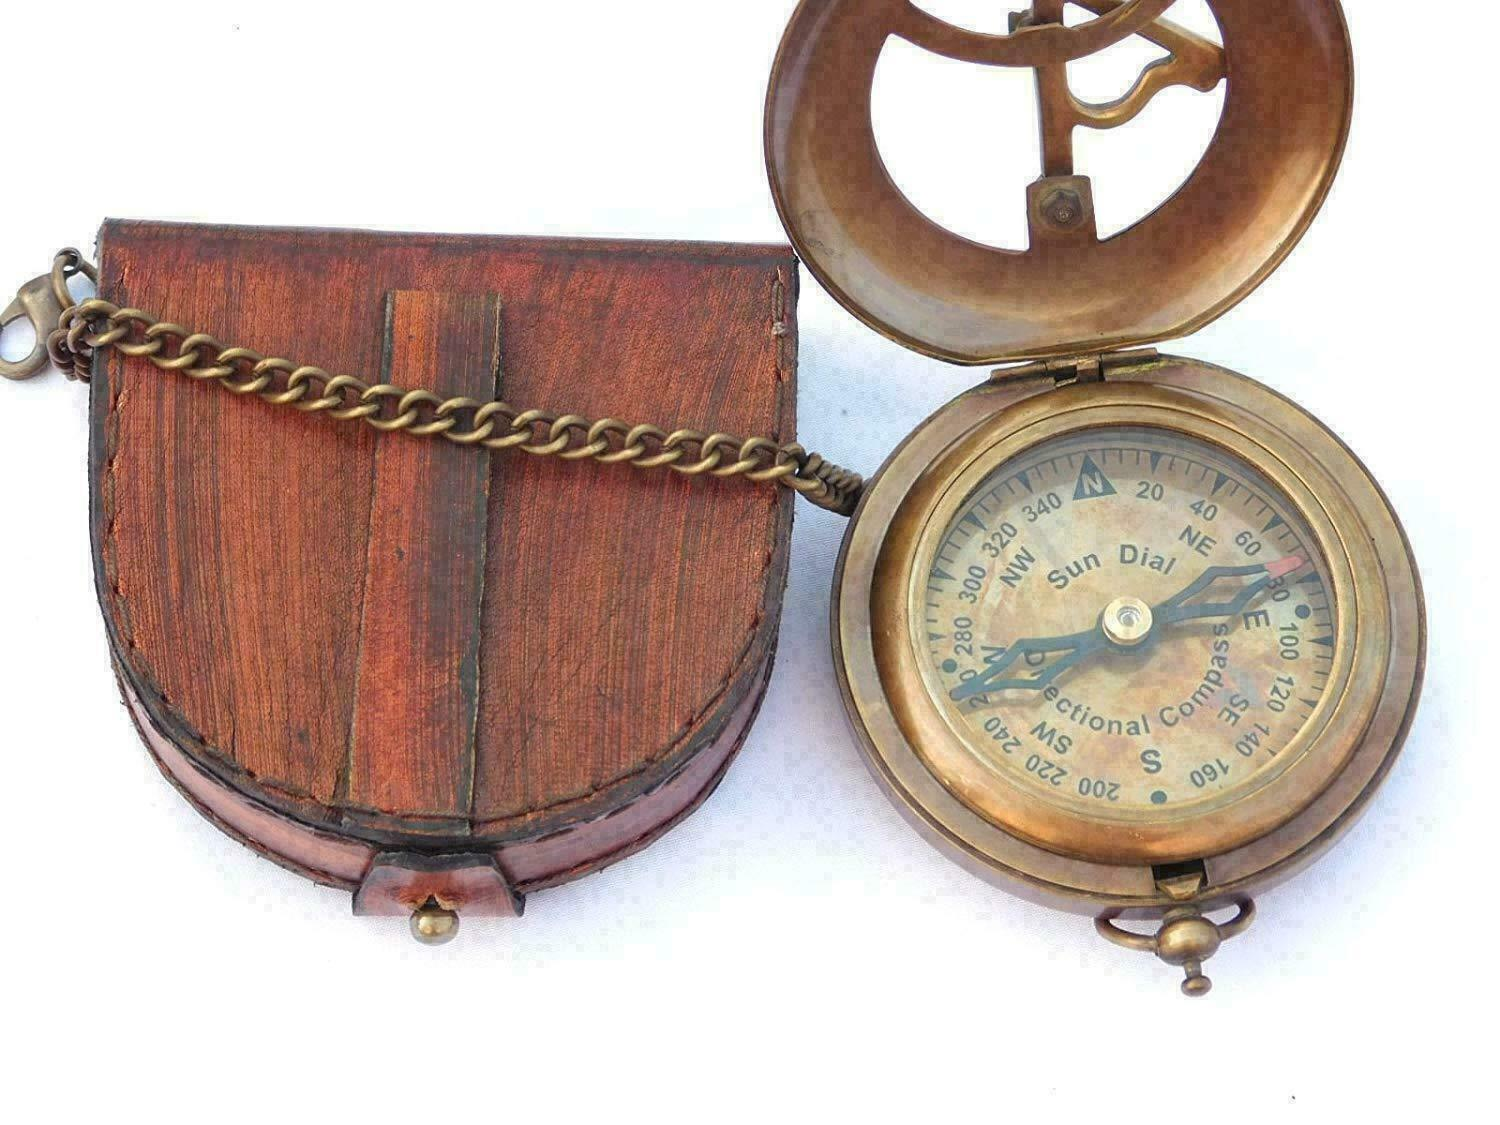 Push Open Compass - SteampunK- Brass Sundial Compass with Leather Case and Chain